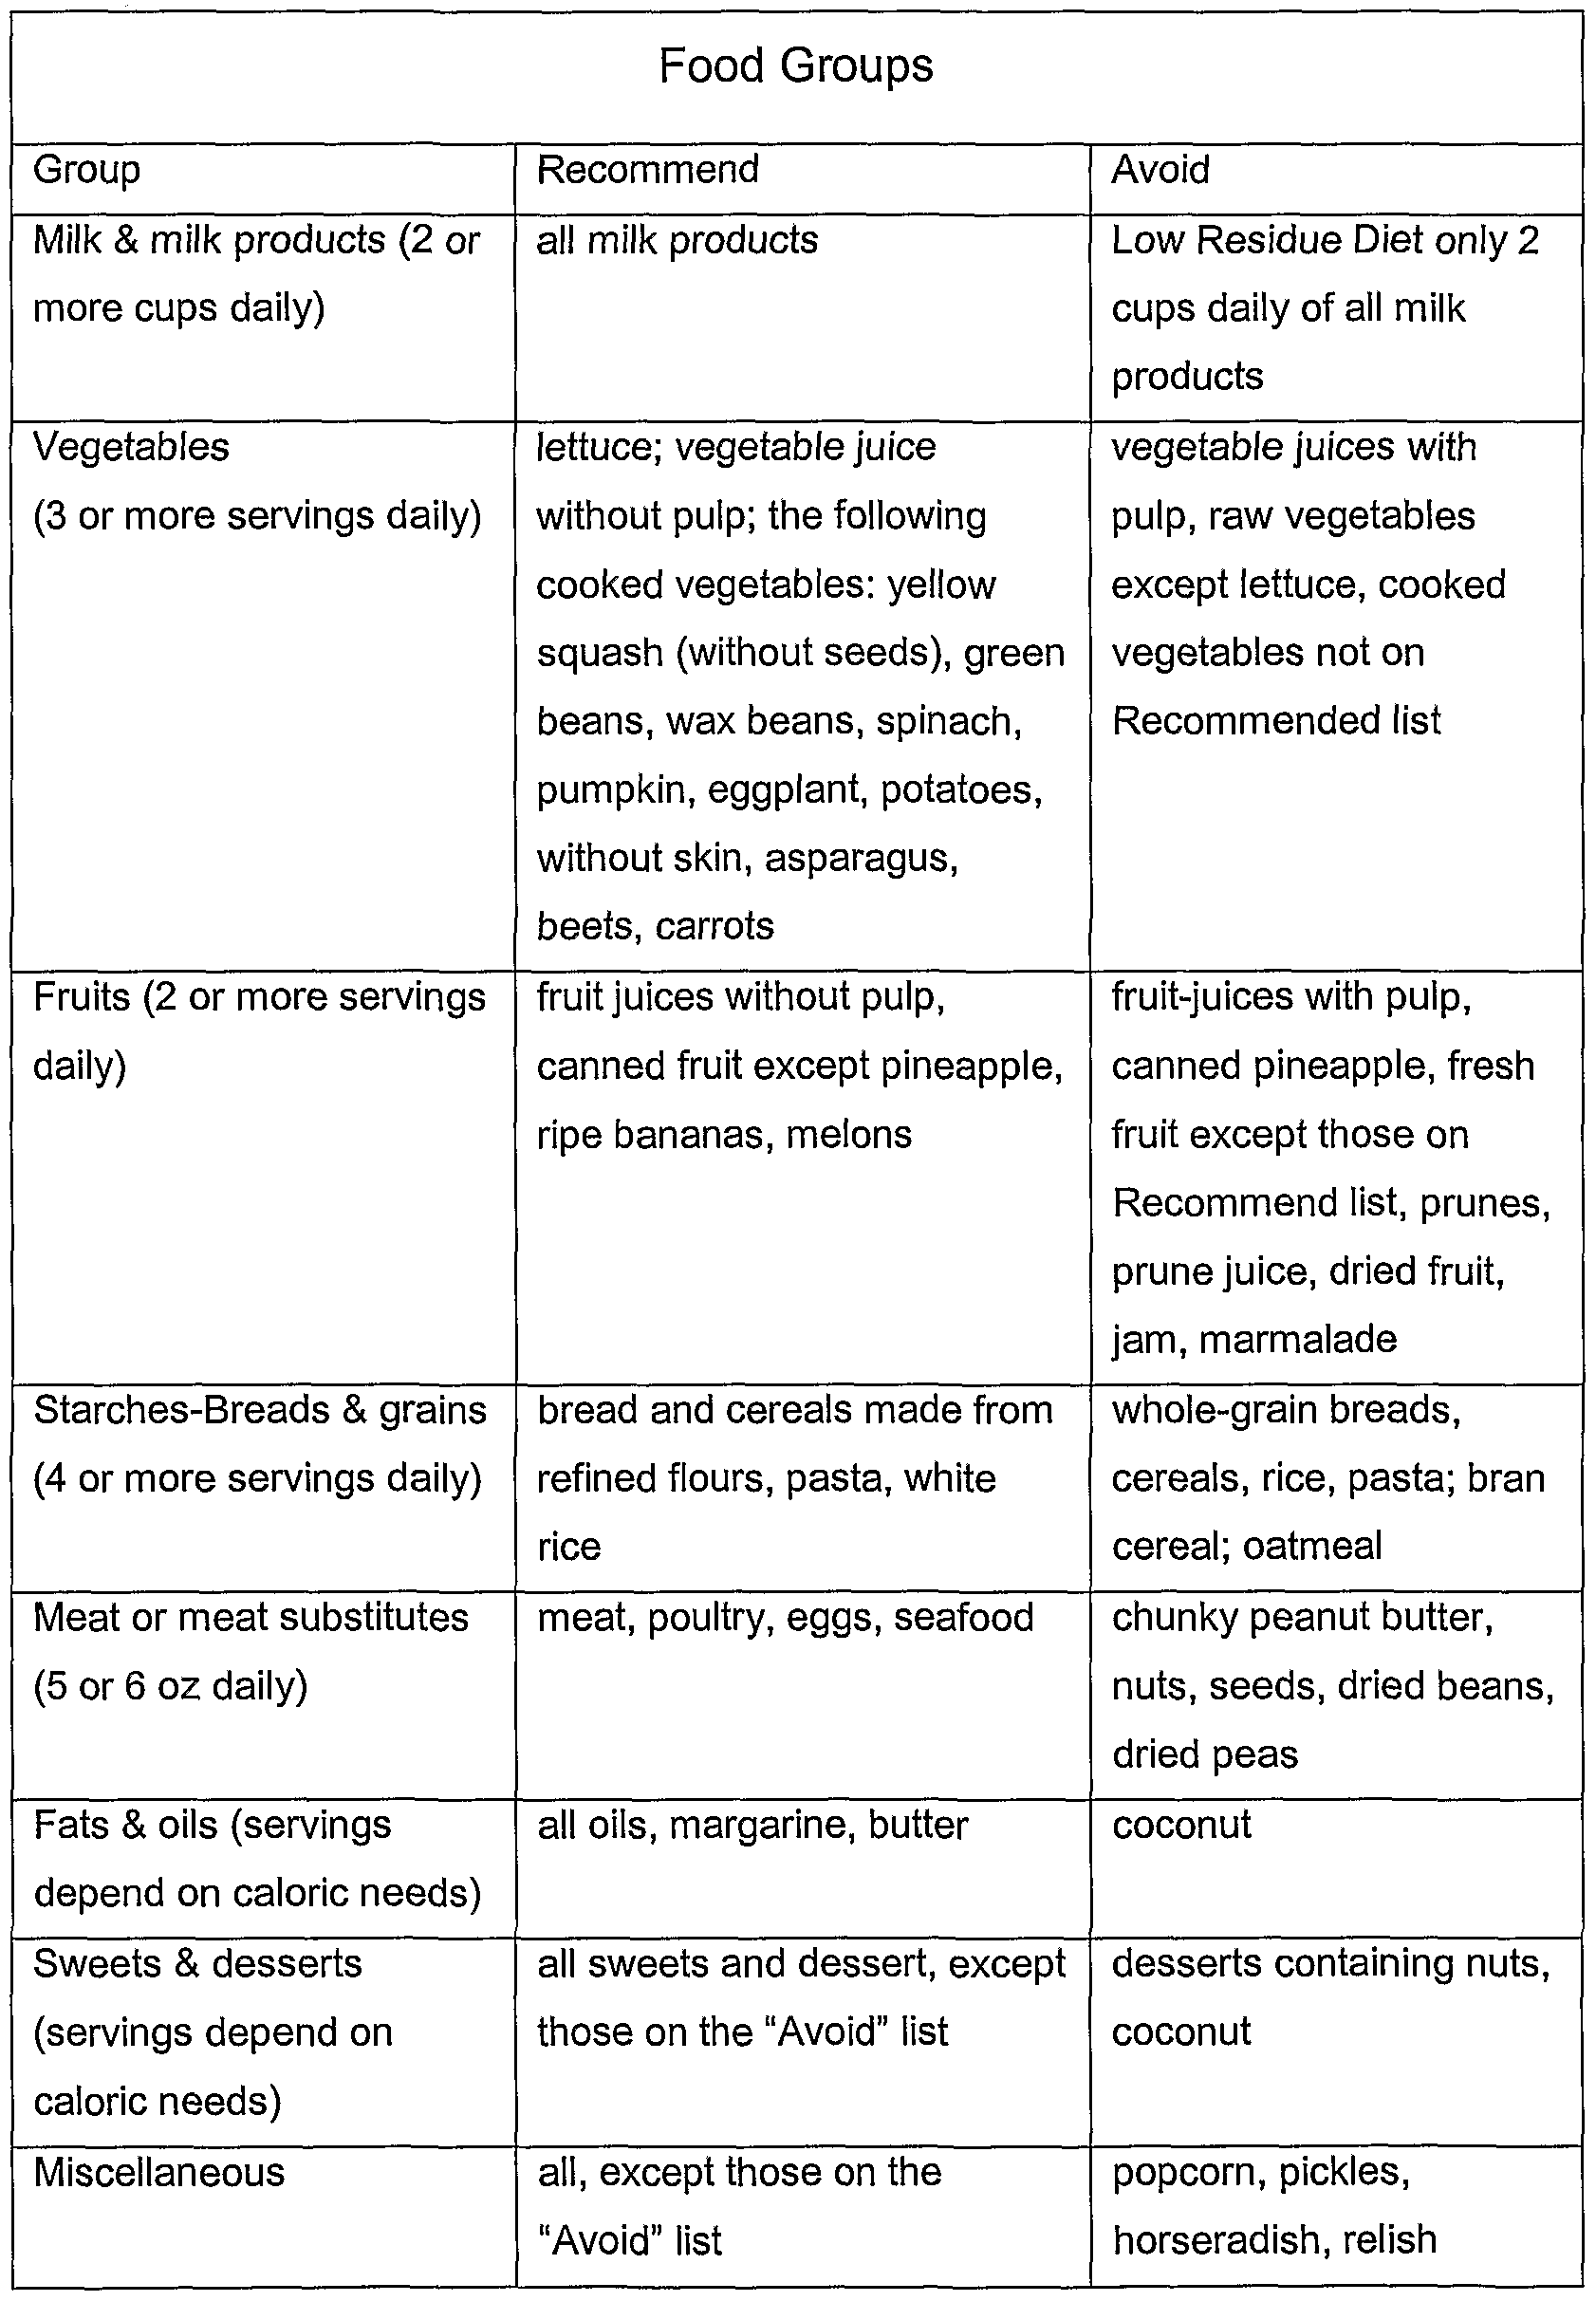 Food Examples For A Low Fiber Low Residue Diet